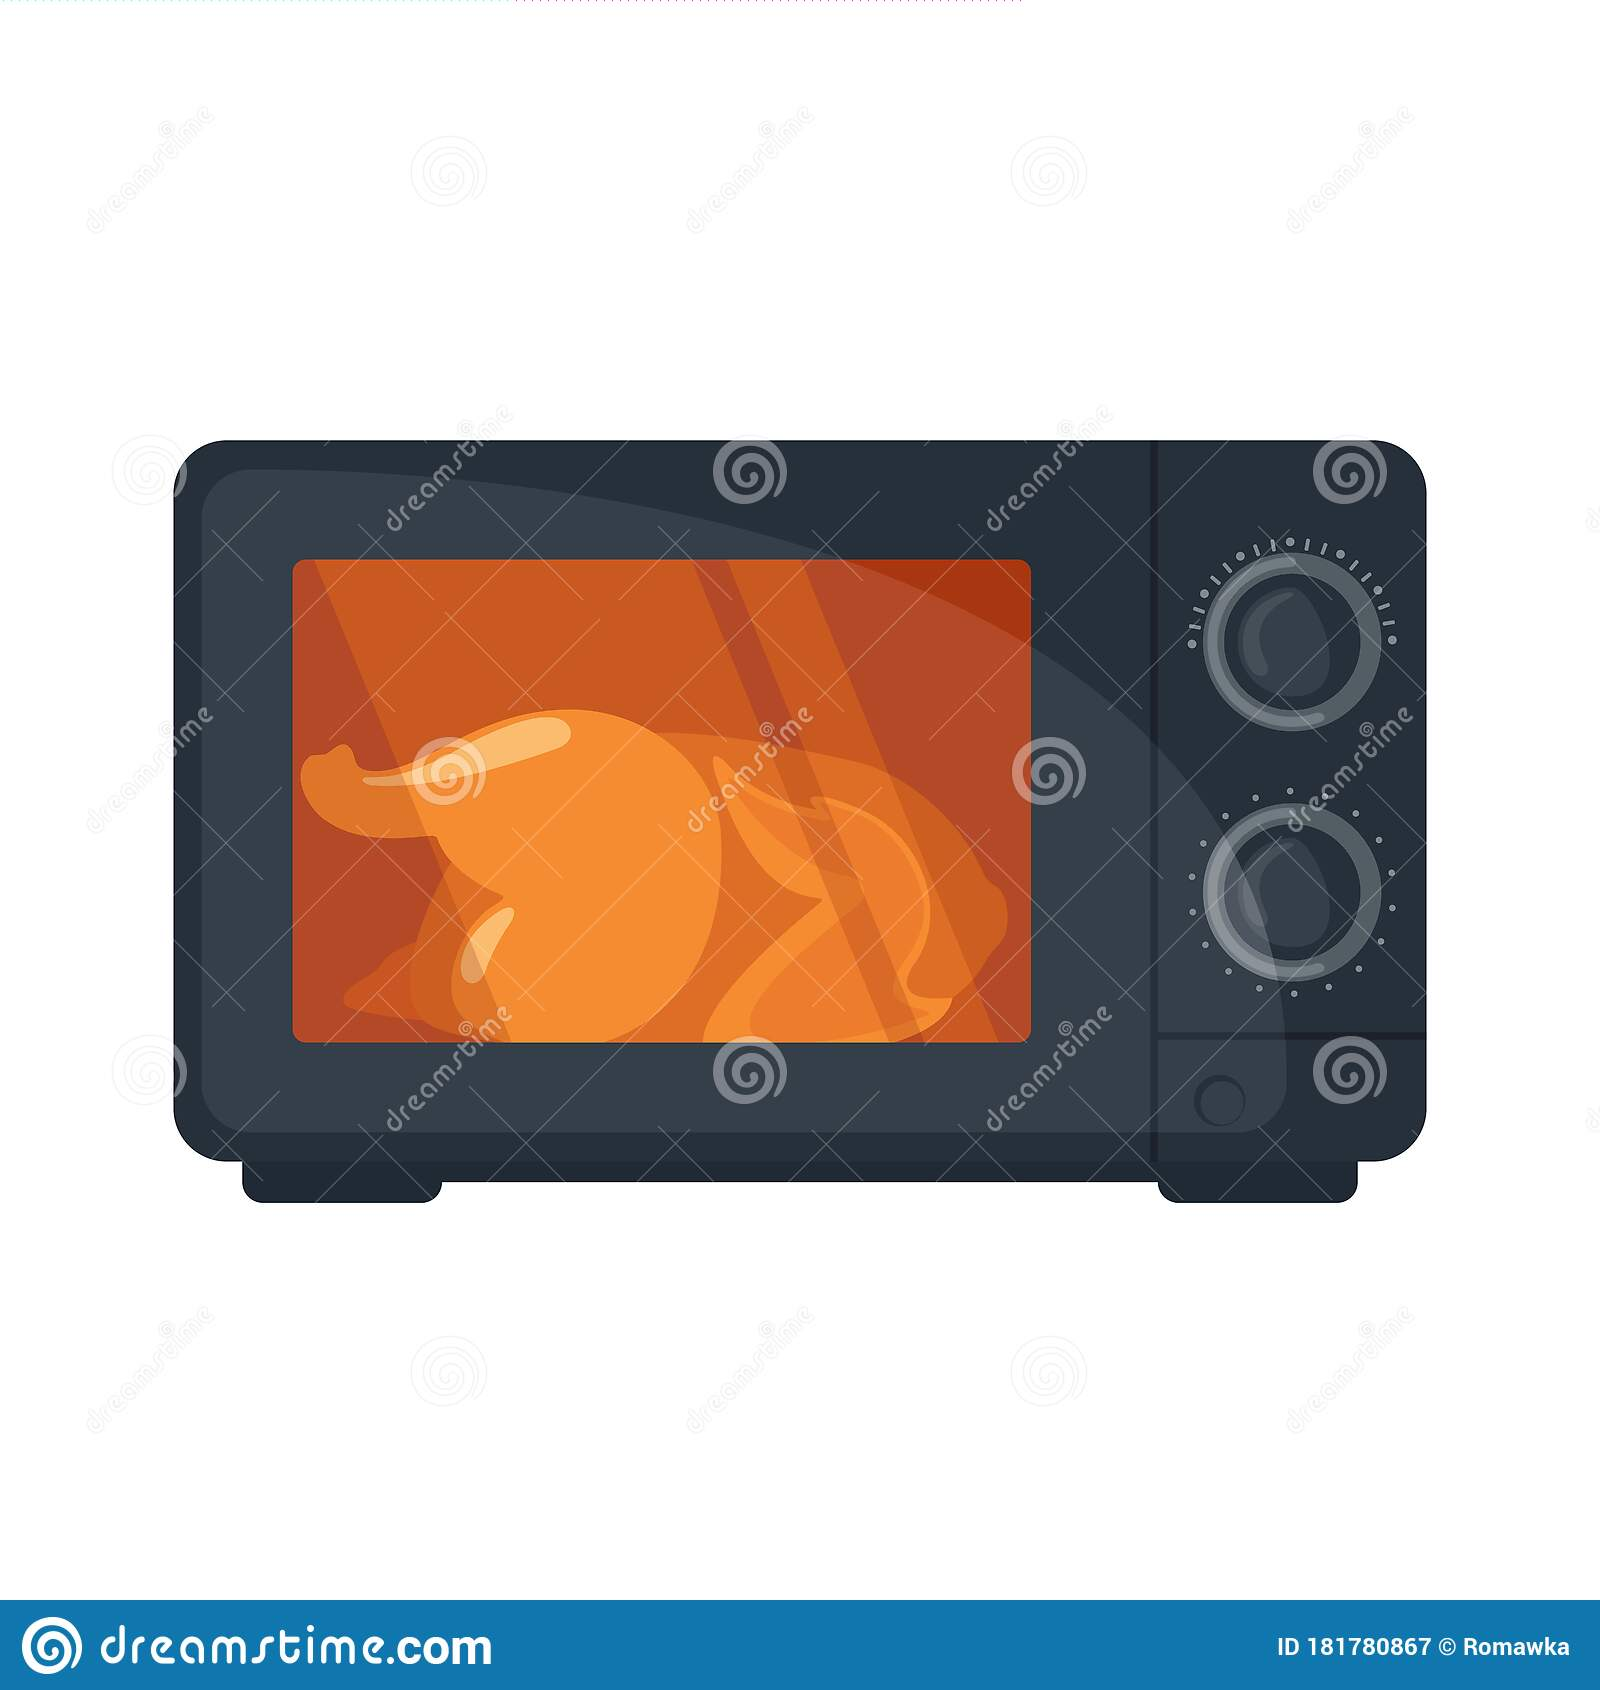 microwave oven with fried chicken icon in flat style isoated on white background stock vector illustration of appliance design 181780867